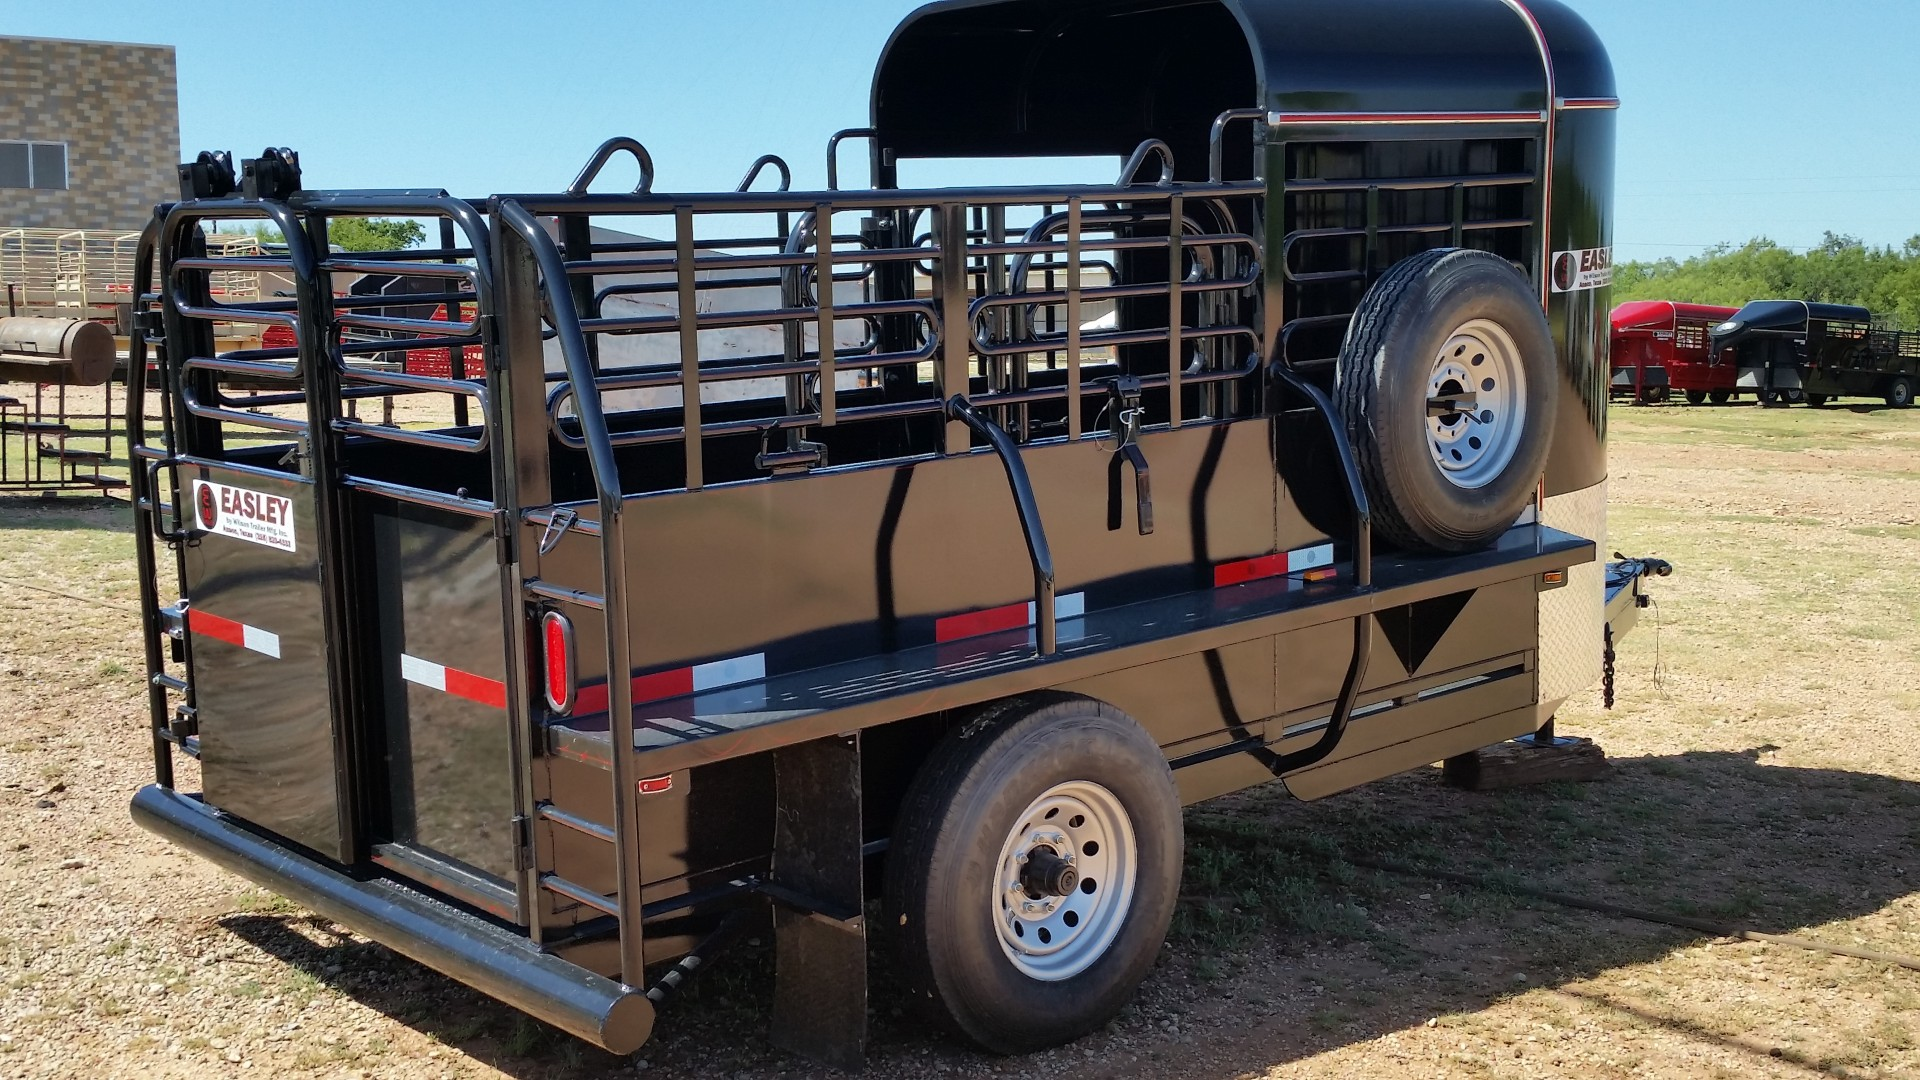 2016 Easley stock trailer